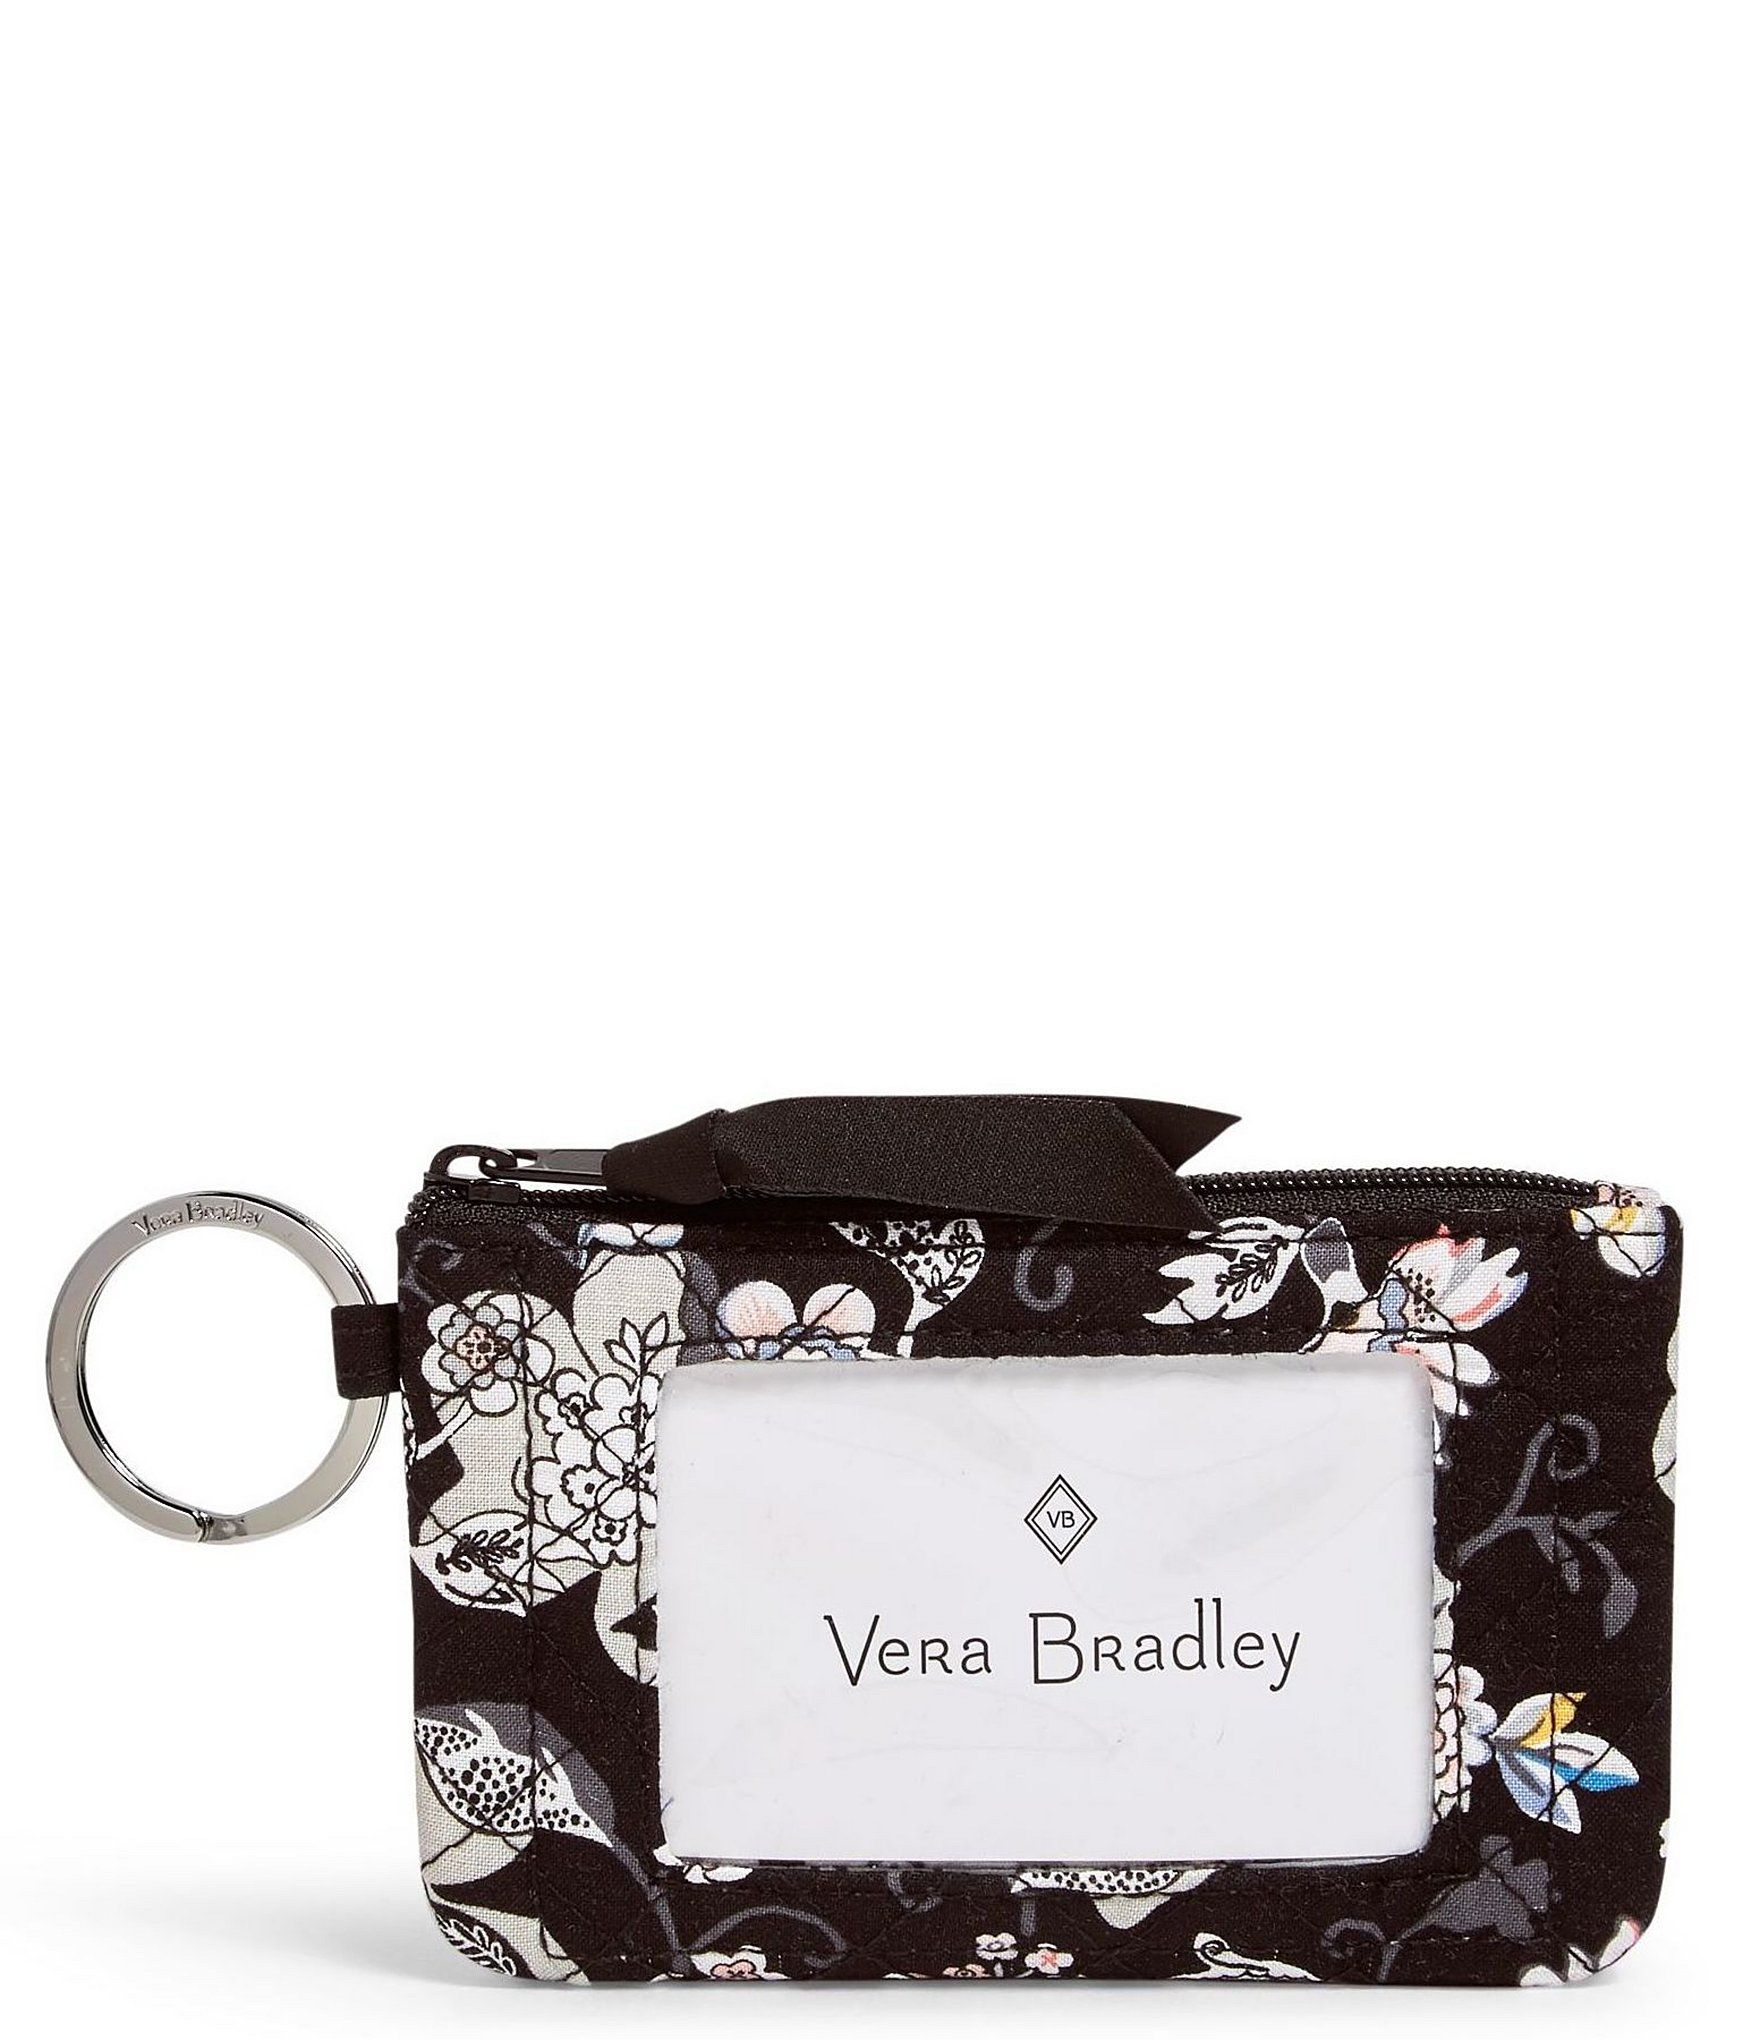 From Vera Bradley, the Iconic Zip ID Case features:Lightweight signature cottonKey ringZip closurePrinted polyester liningFront ID windowApprox. 5